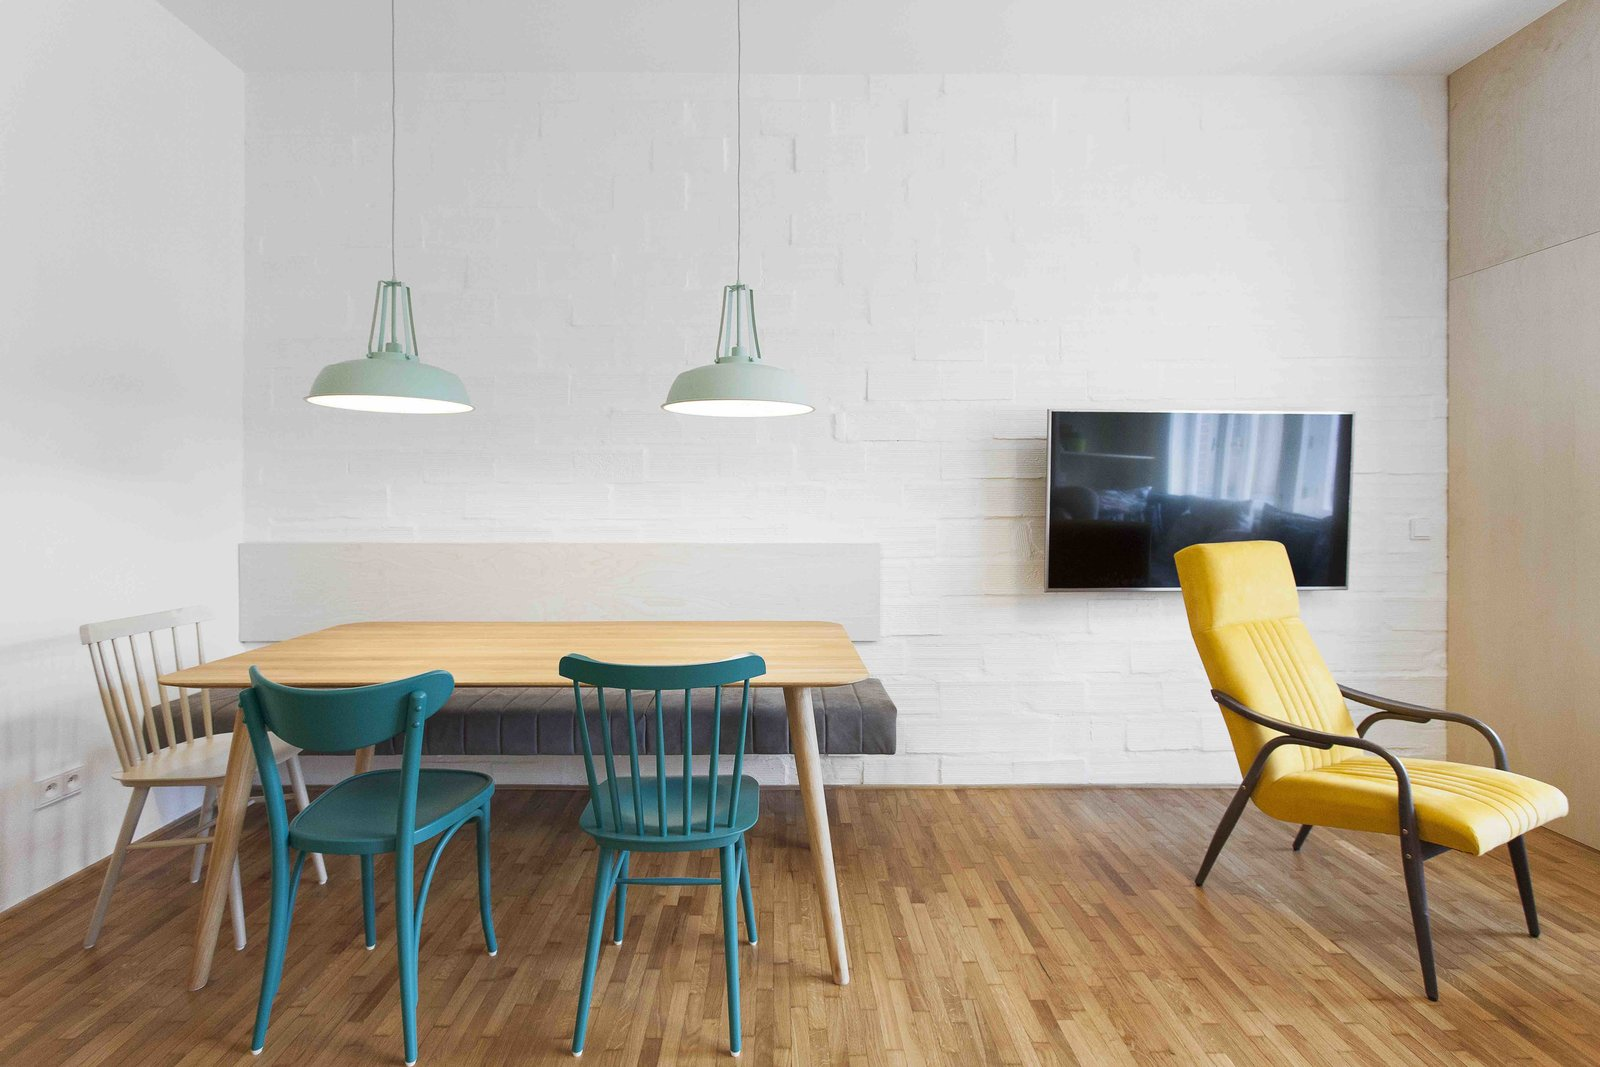 Dining Room, Table, Pendant Lighting, Medium Hardwood Floor, Chair, and Bench  Photo 2 of 13 in A Family Apartment in Prague That's Filled With Clever Storage Solutions and Built-In Nooks